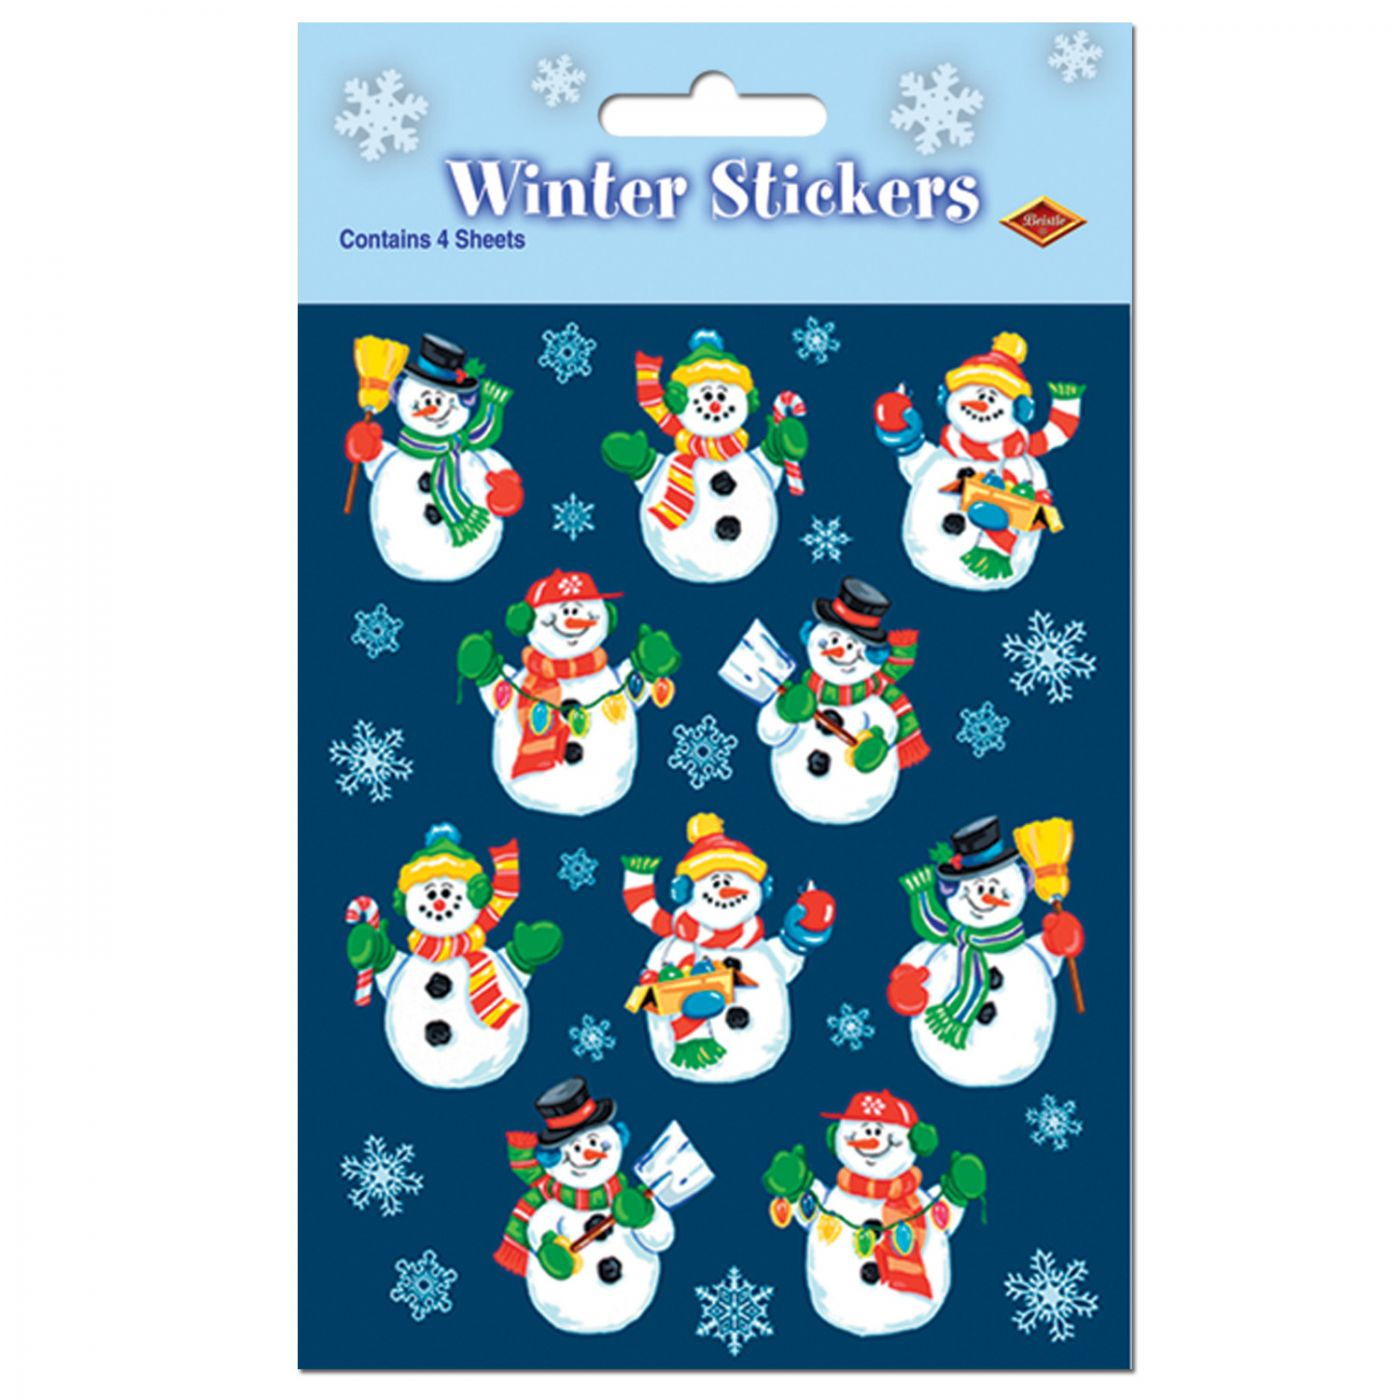 Snowman Stickers image